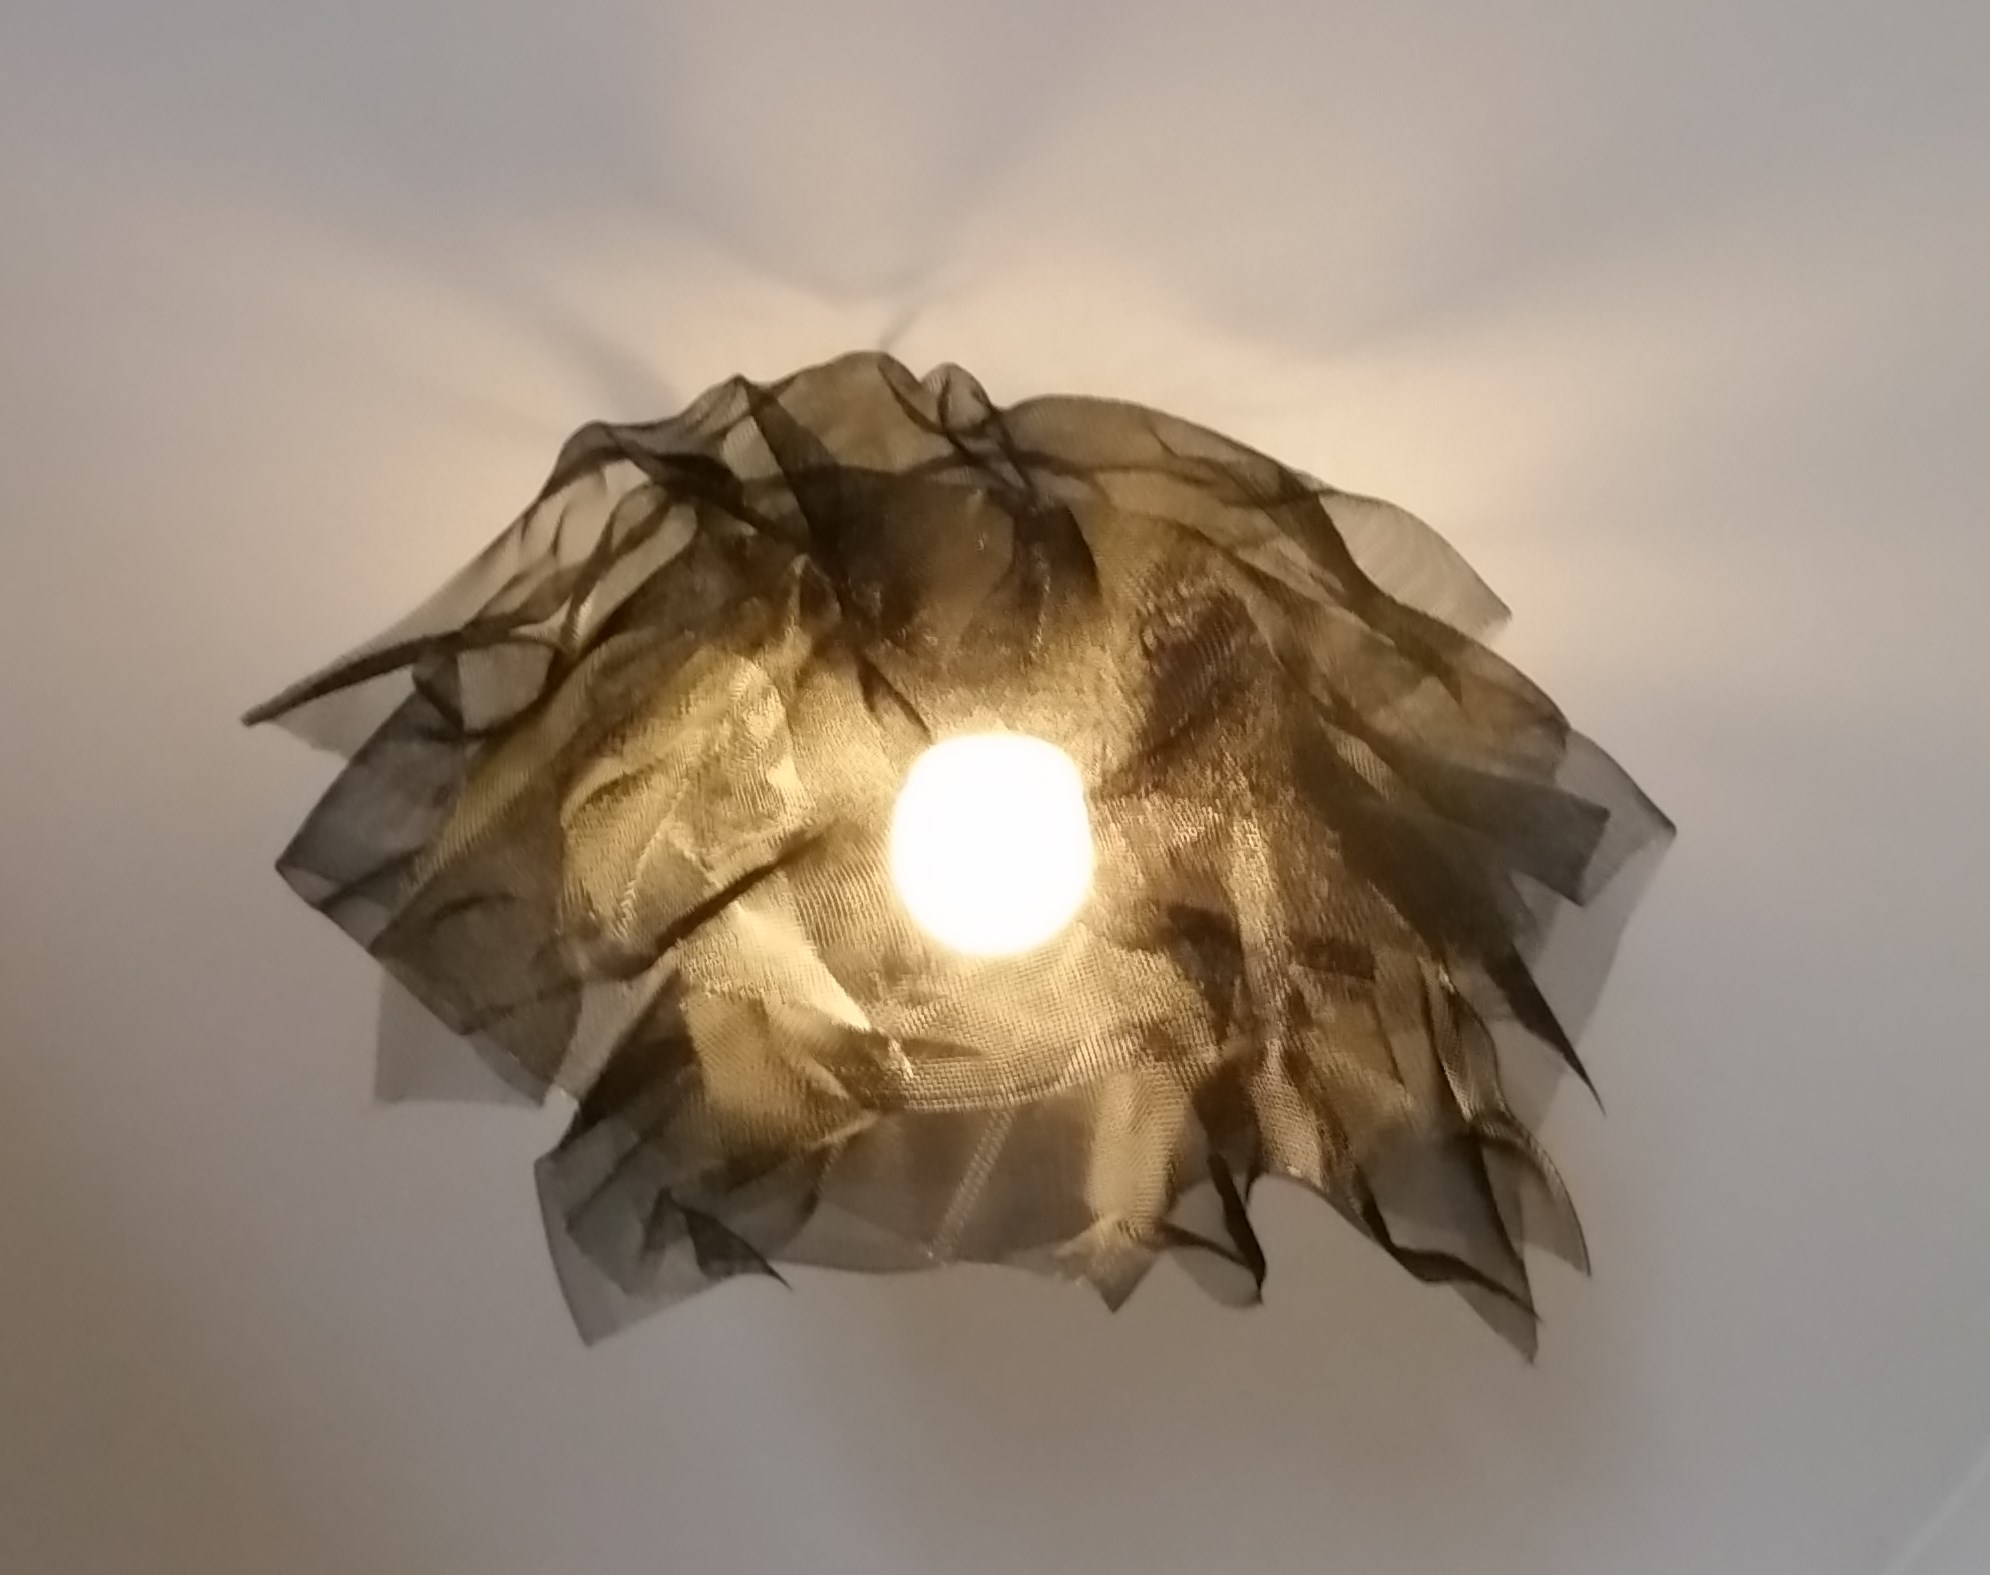 Sculptured wire light shade.